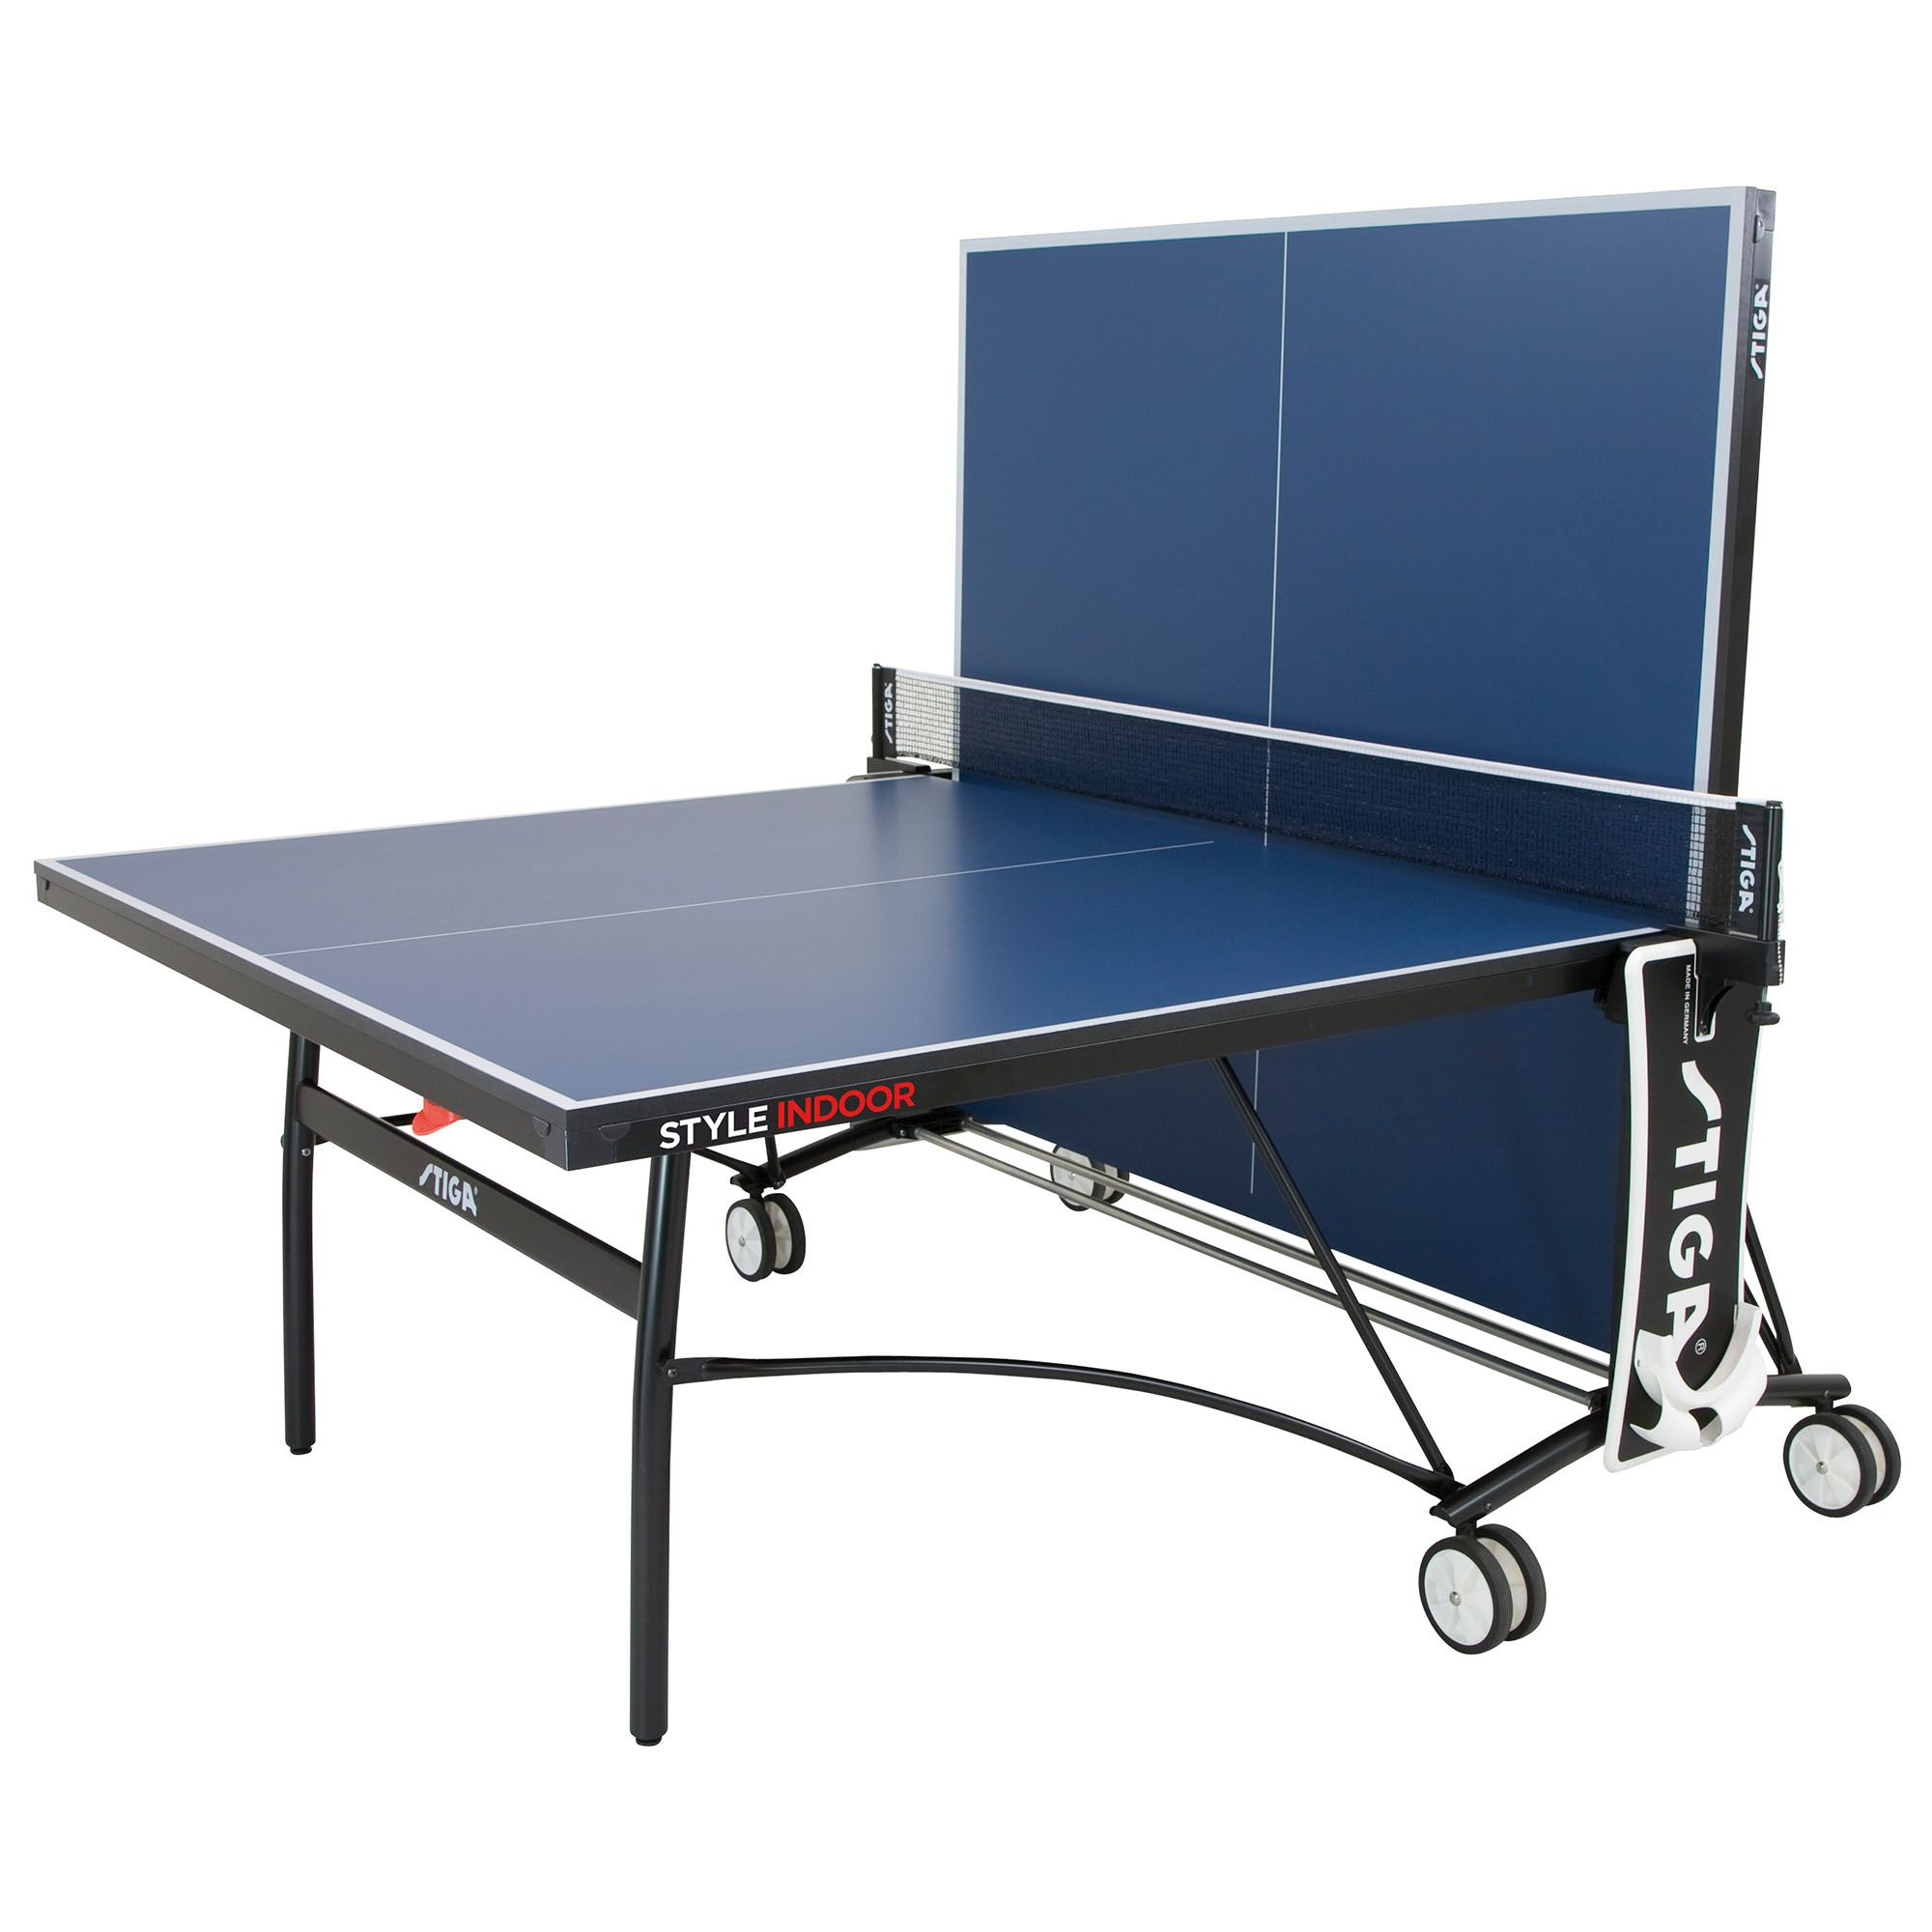 Stiga style cs indoor table tennis table - Stiga outdoor table tennis table ...